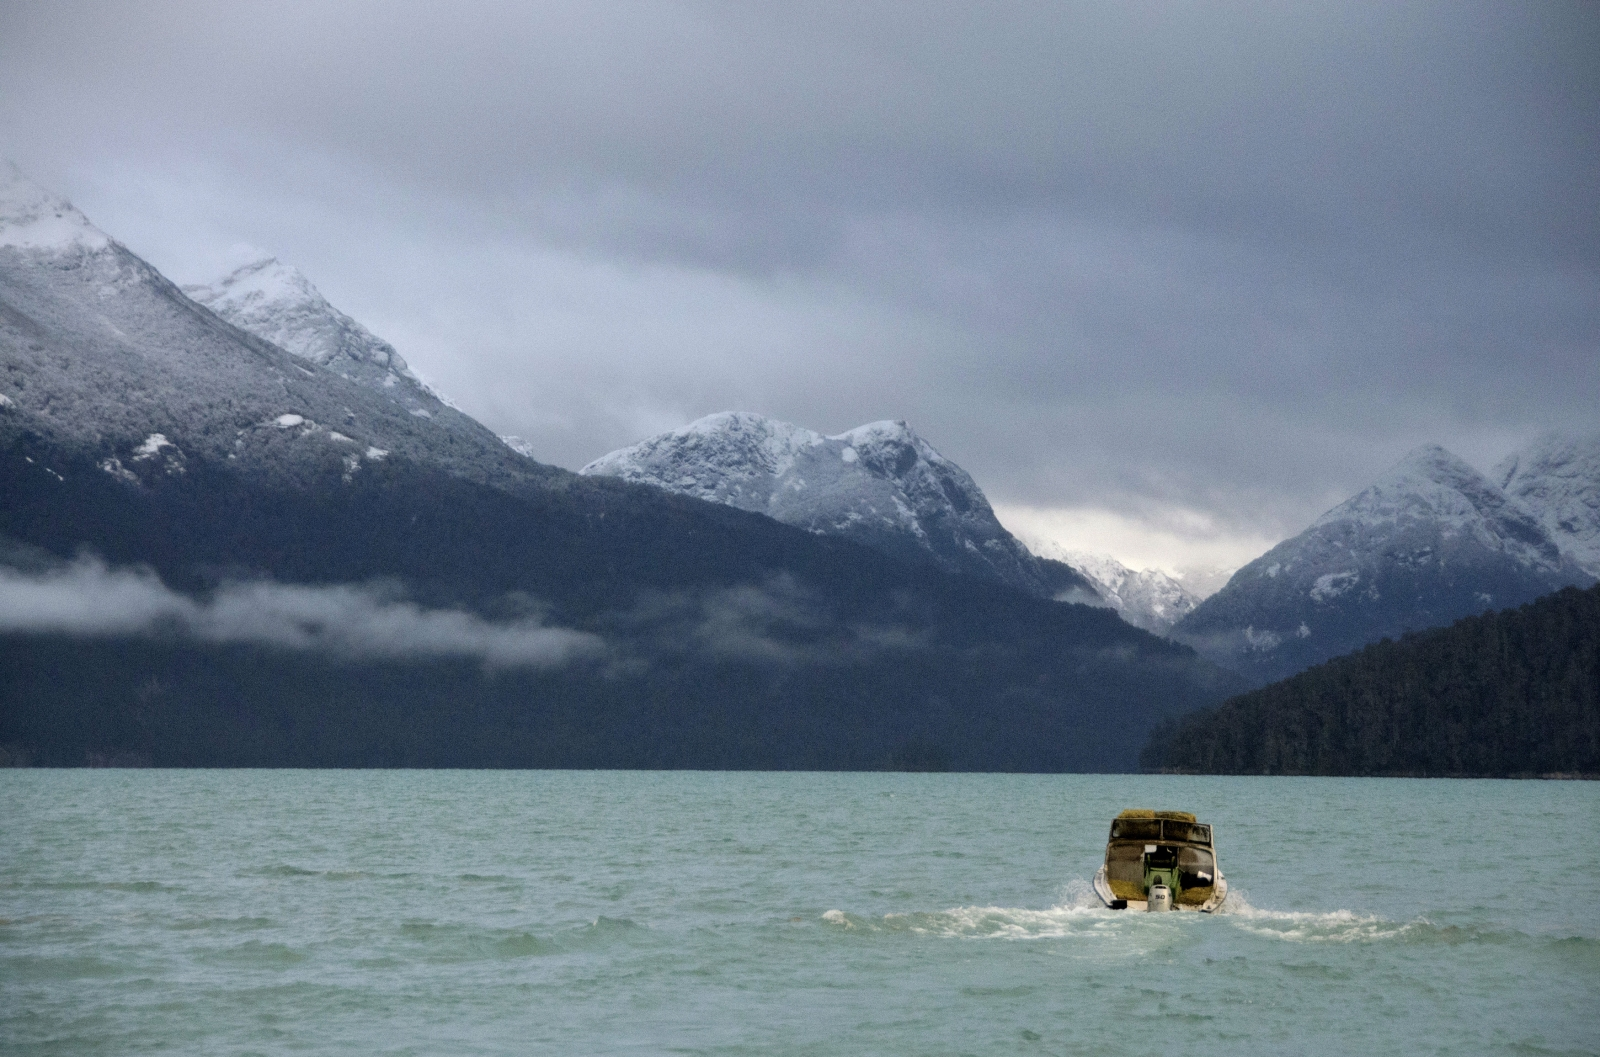 A boat travels on the Nahuel Huapi Lake in Argentina's mountain